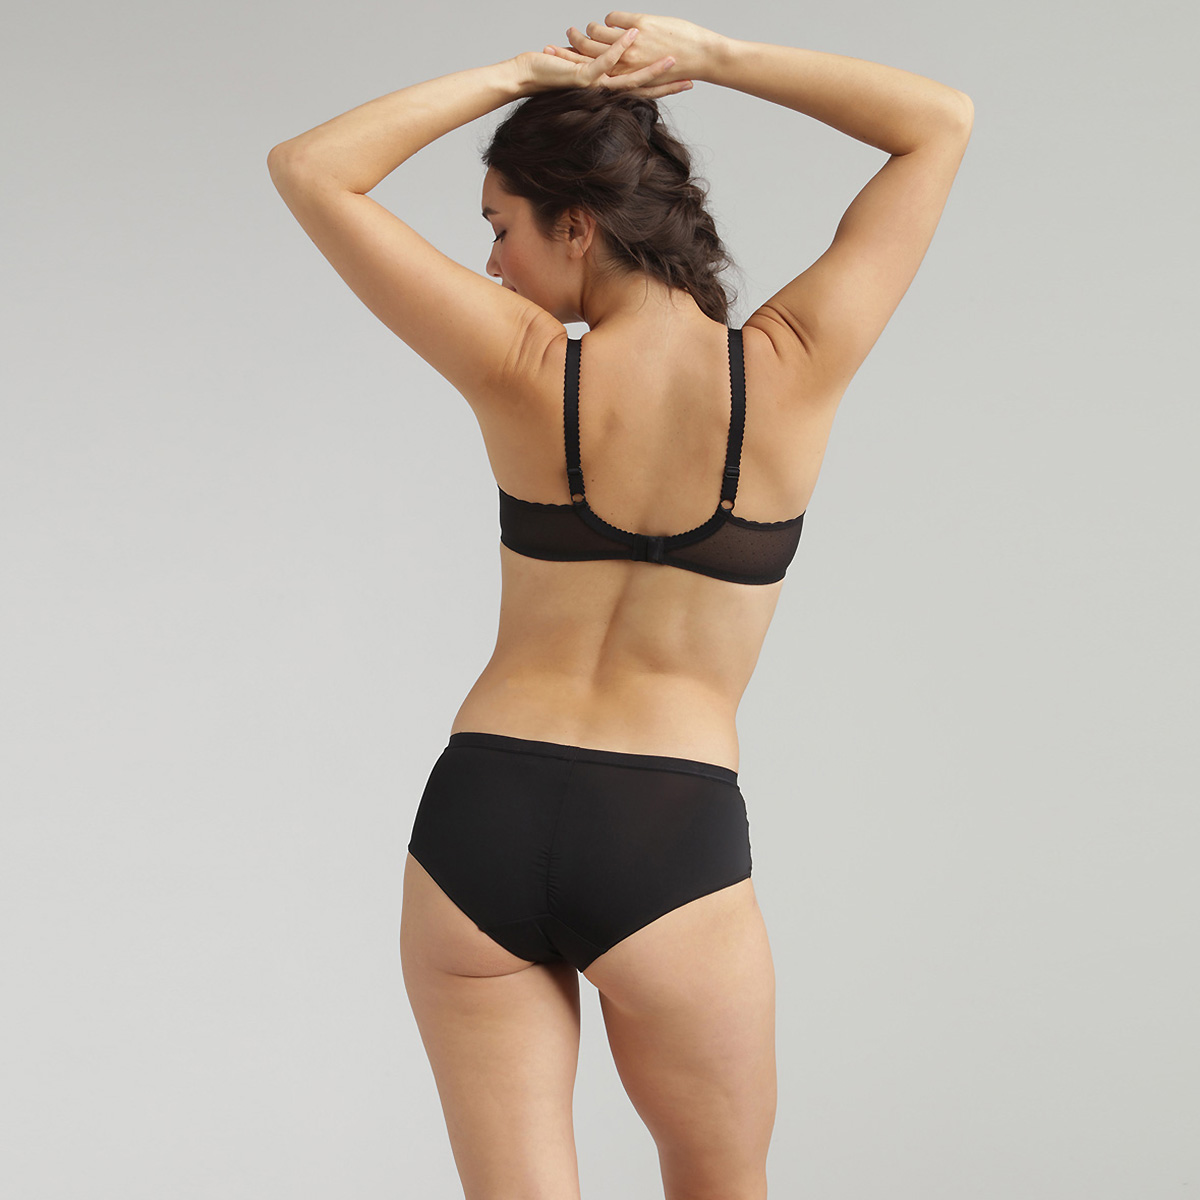 Padded bra in black - Secret Comfort, , PLAYTEX